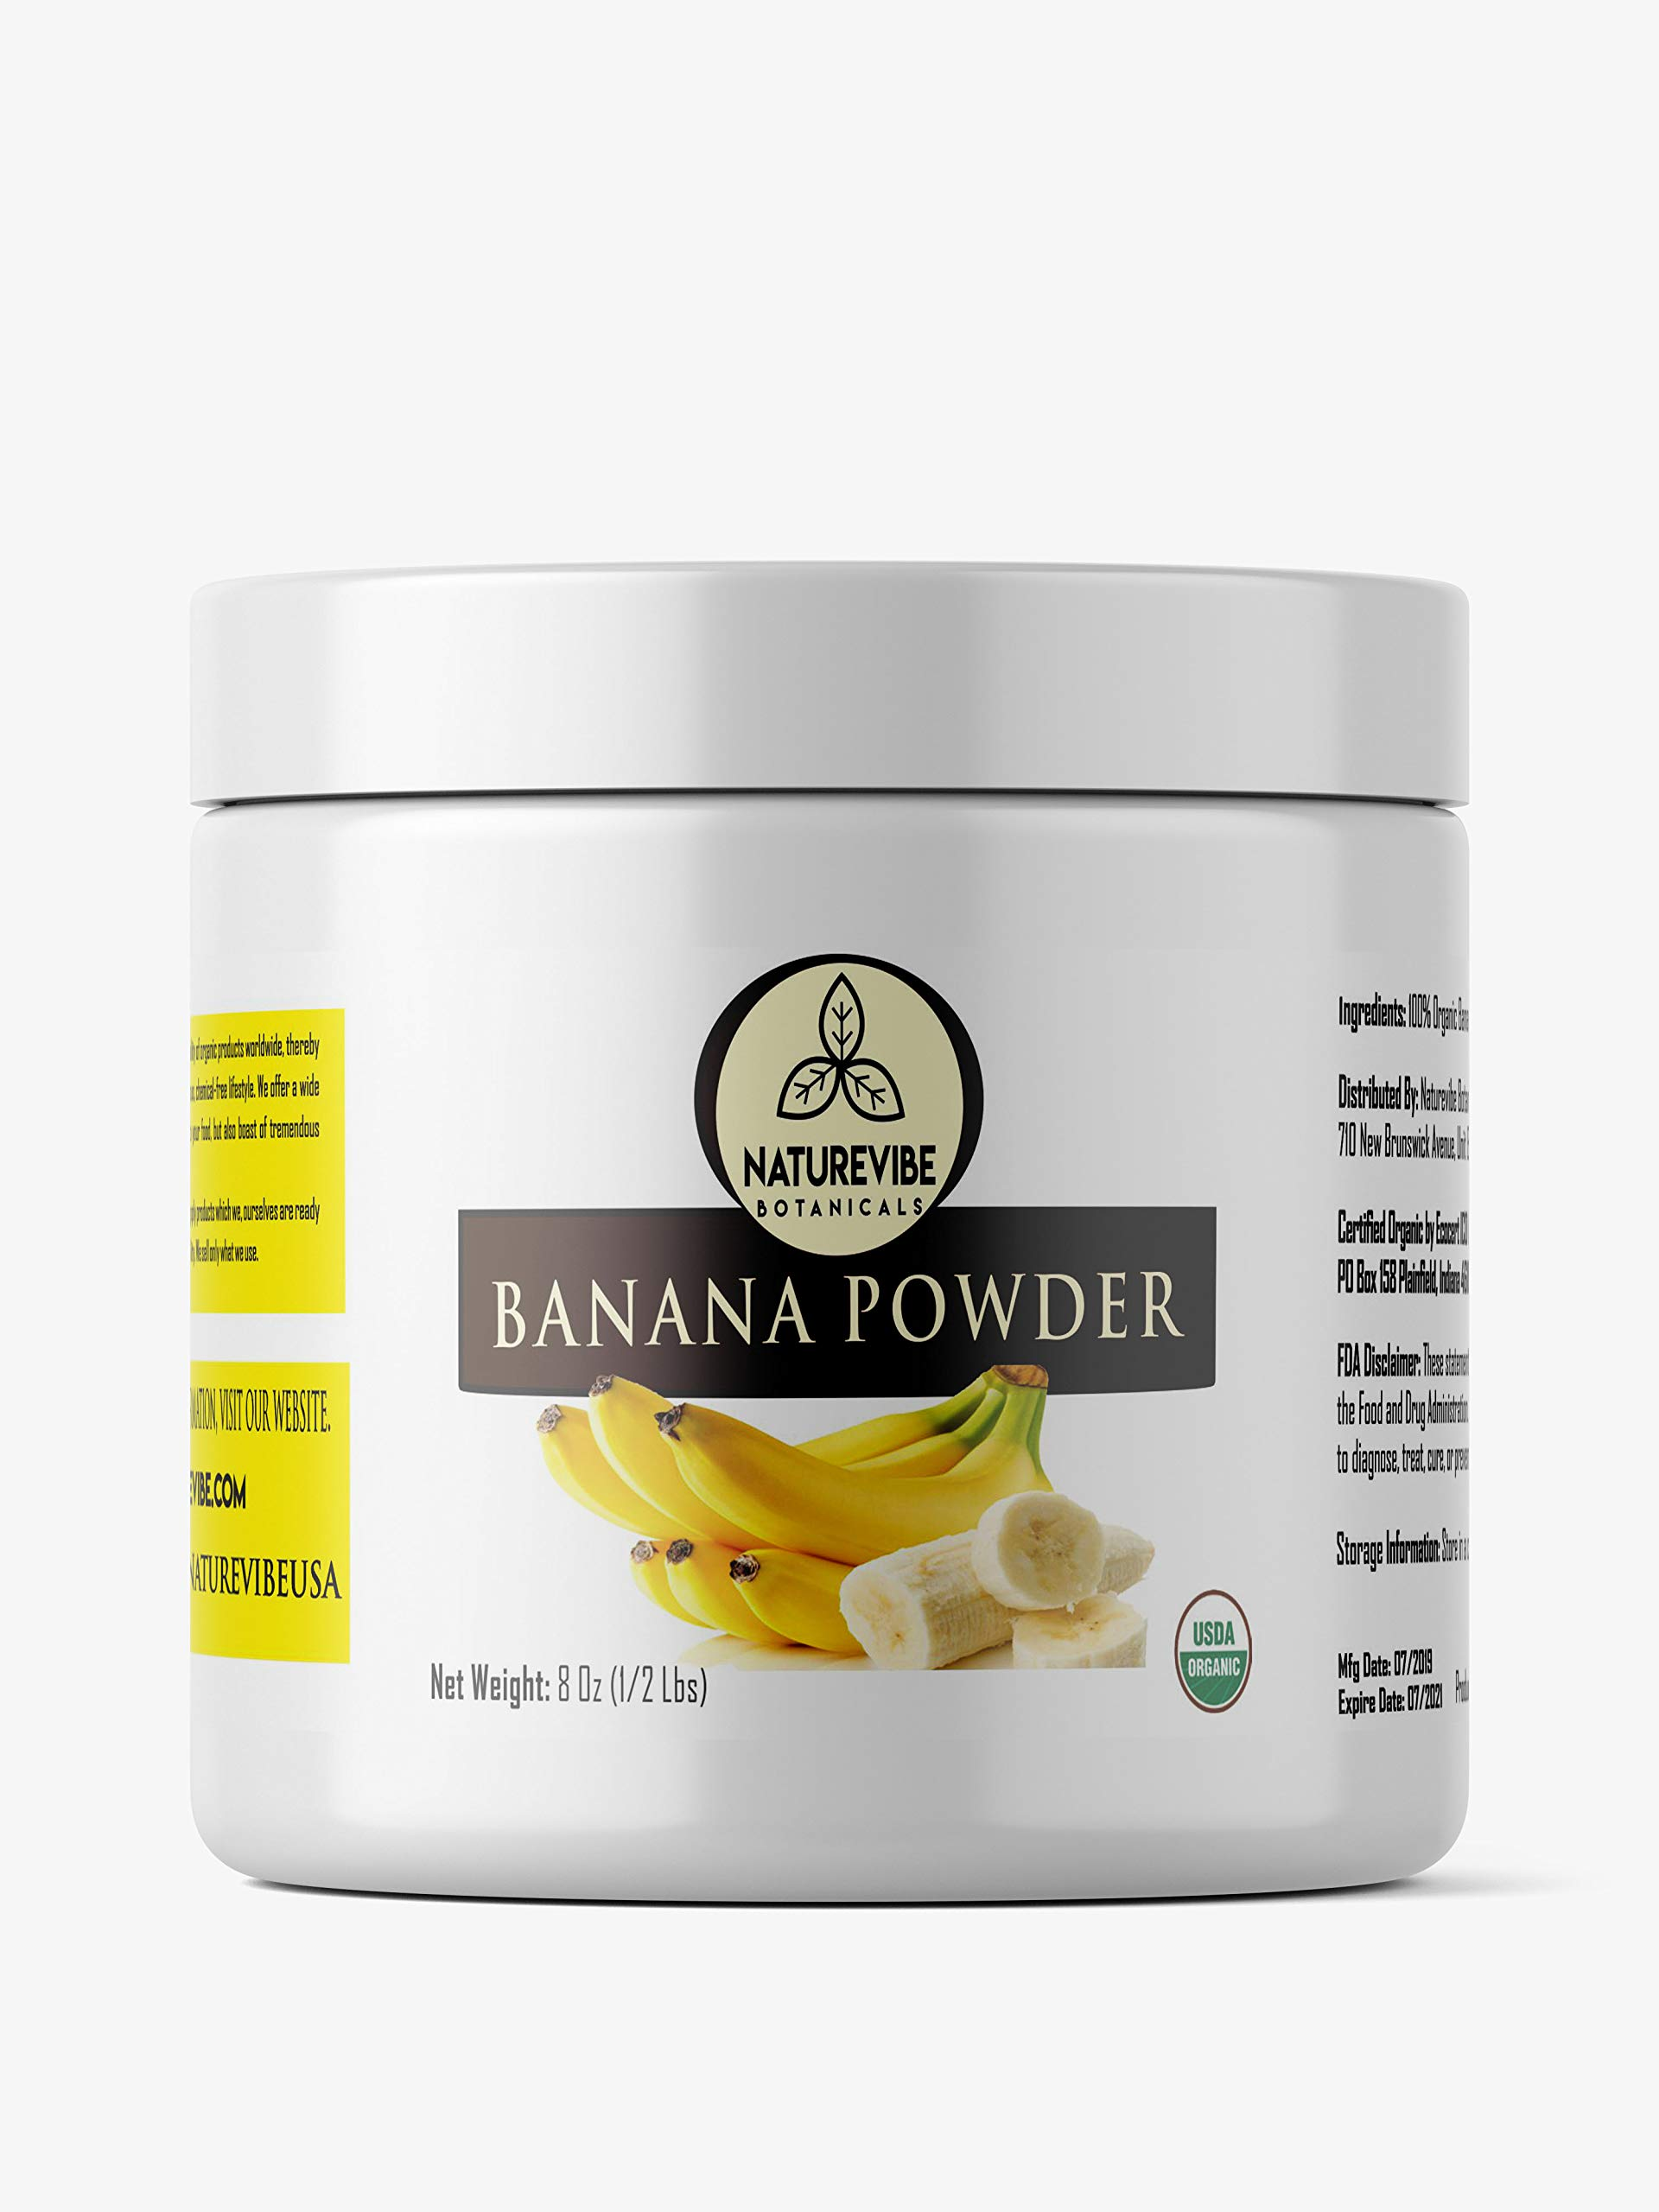 Naturevibe Botanicals Organic Banana Powder, 8 ounces   Non-GMO and Gluten Free   Adds Flavor   Rich source of protein